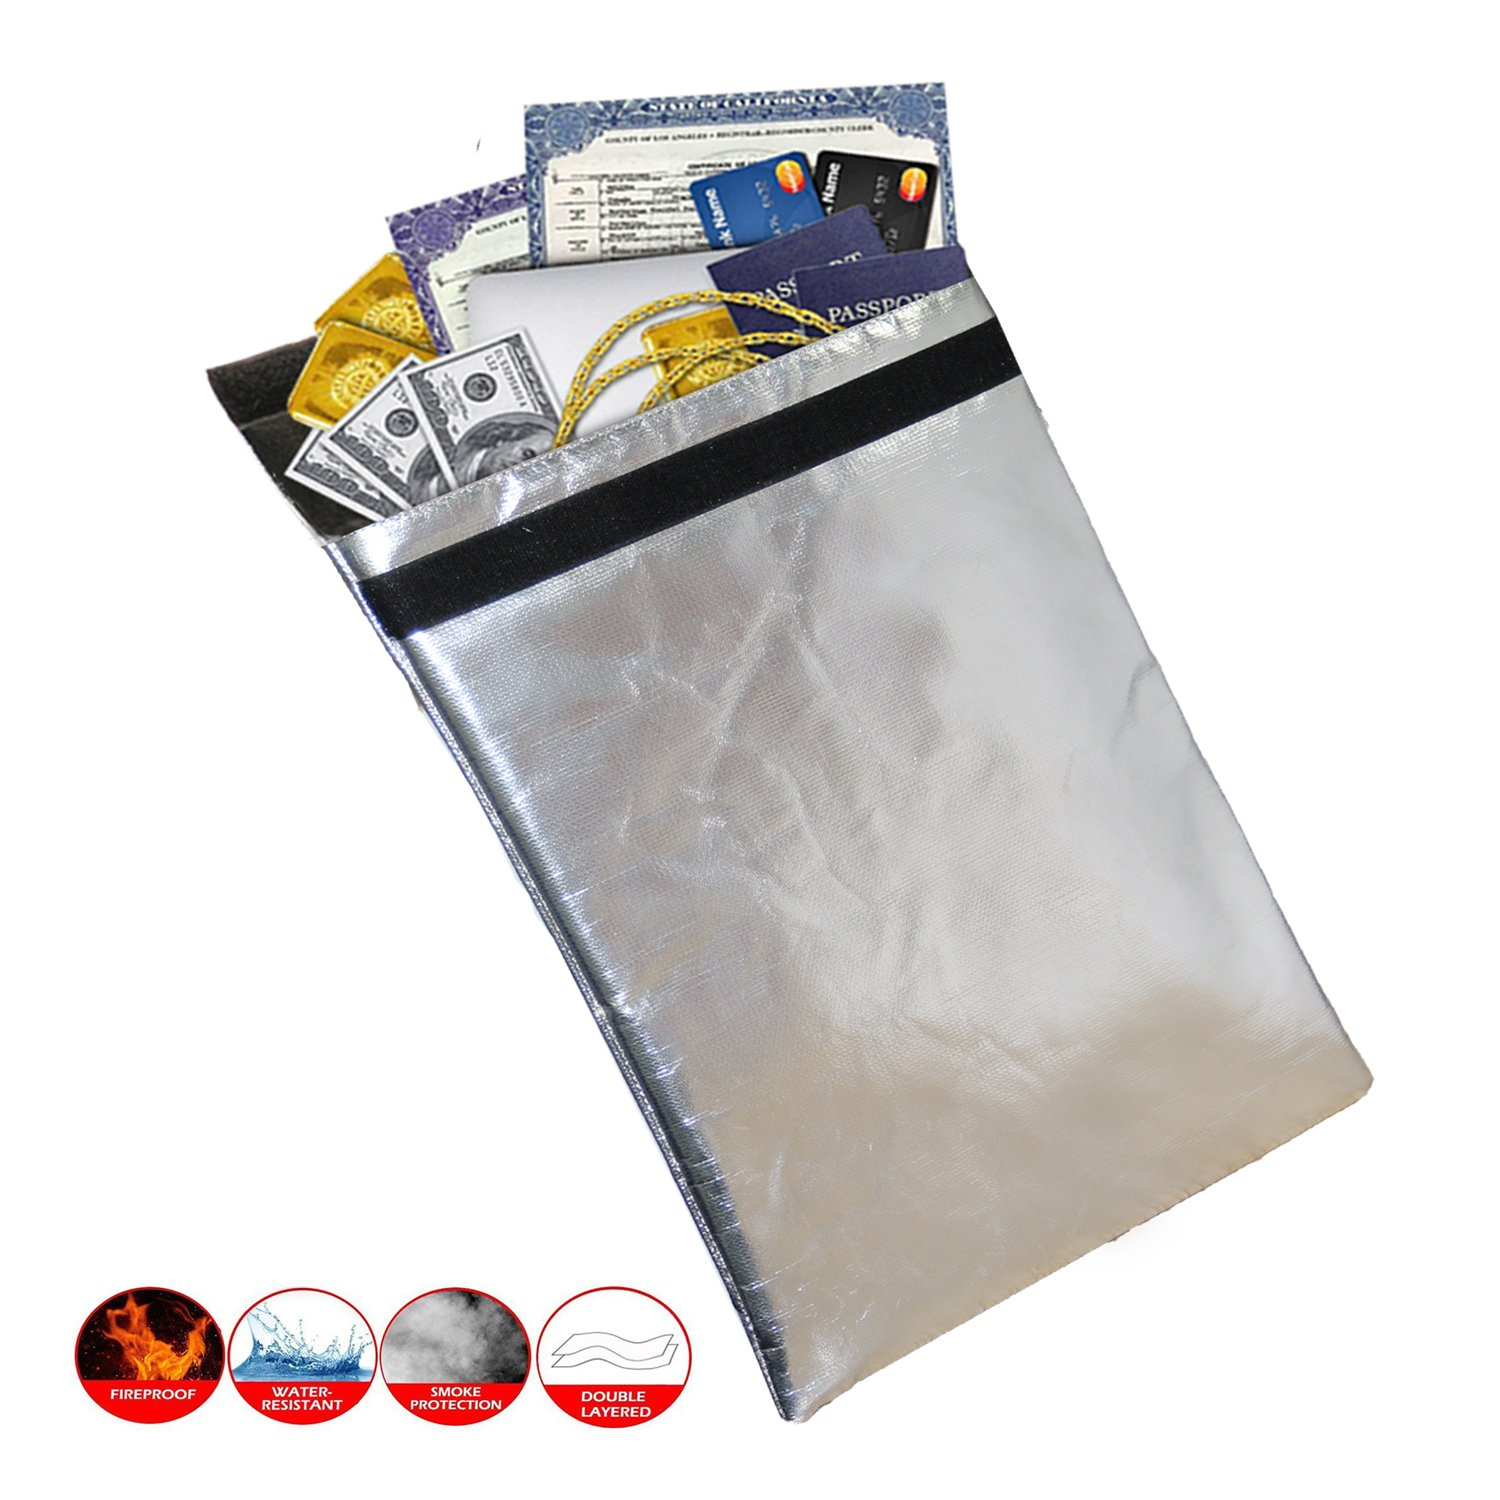 Fireproof Safe Bag, Fire Resistant Document Bag Pouch Safe Storage to Protect Money Documents Passport Legal Documents Cash Double Layer Fiberglass Non Itchy & Insulation